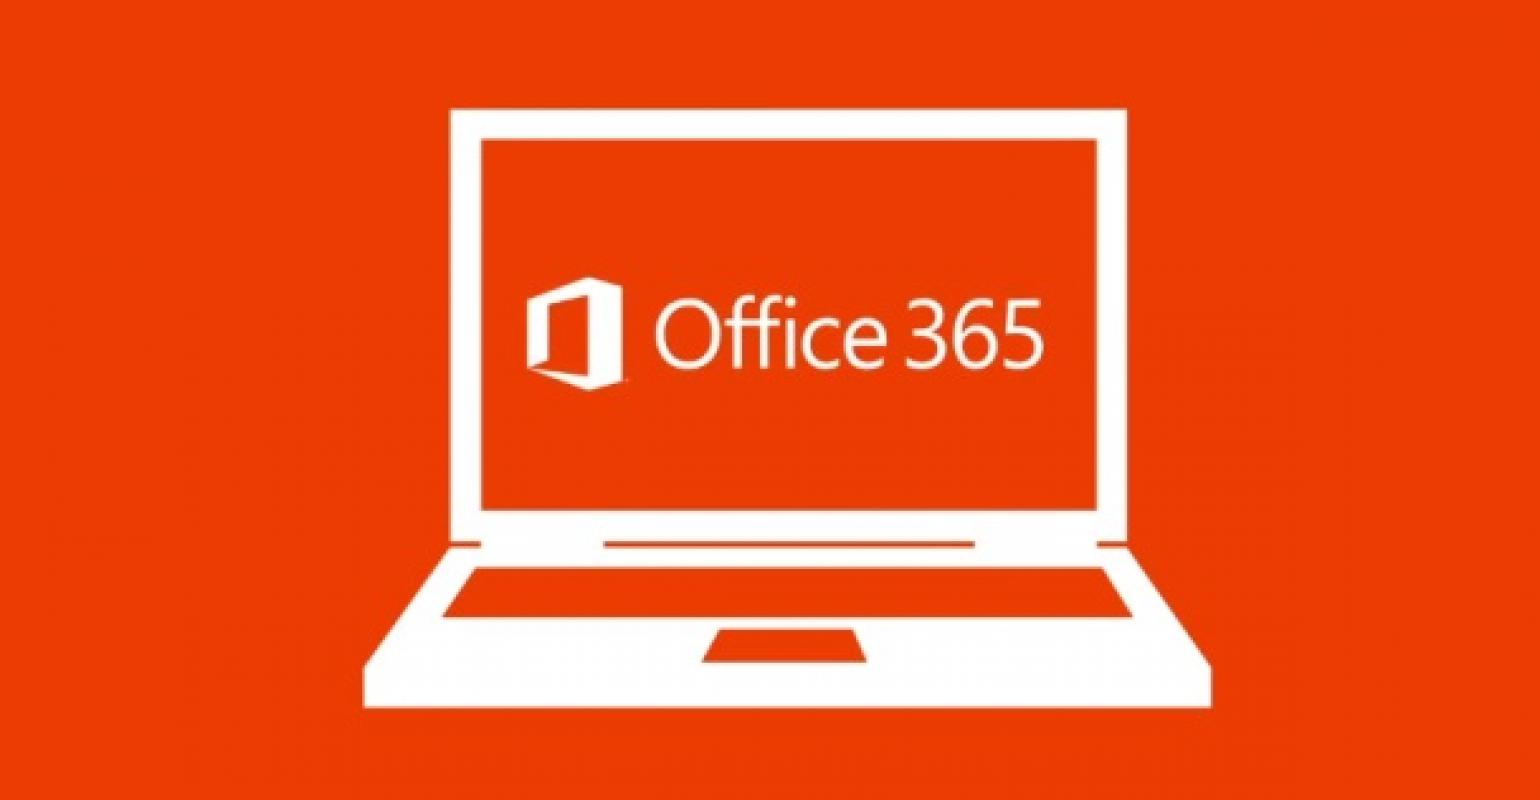 Enable Office 365 Outlook Web App Offline | Paul Thurrot